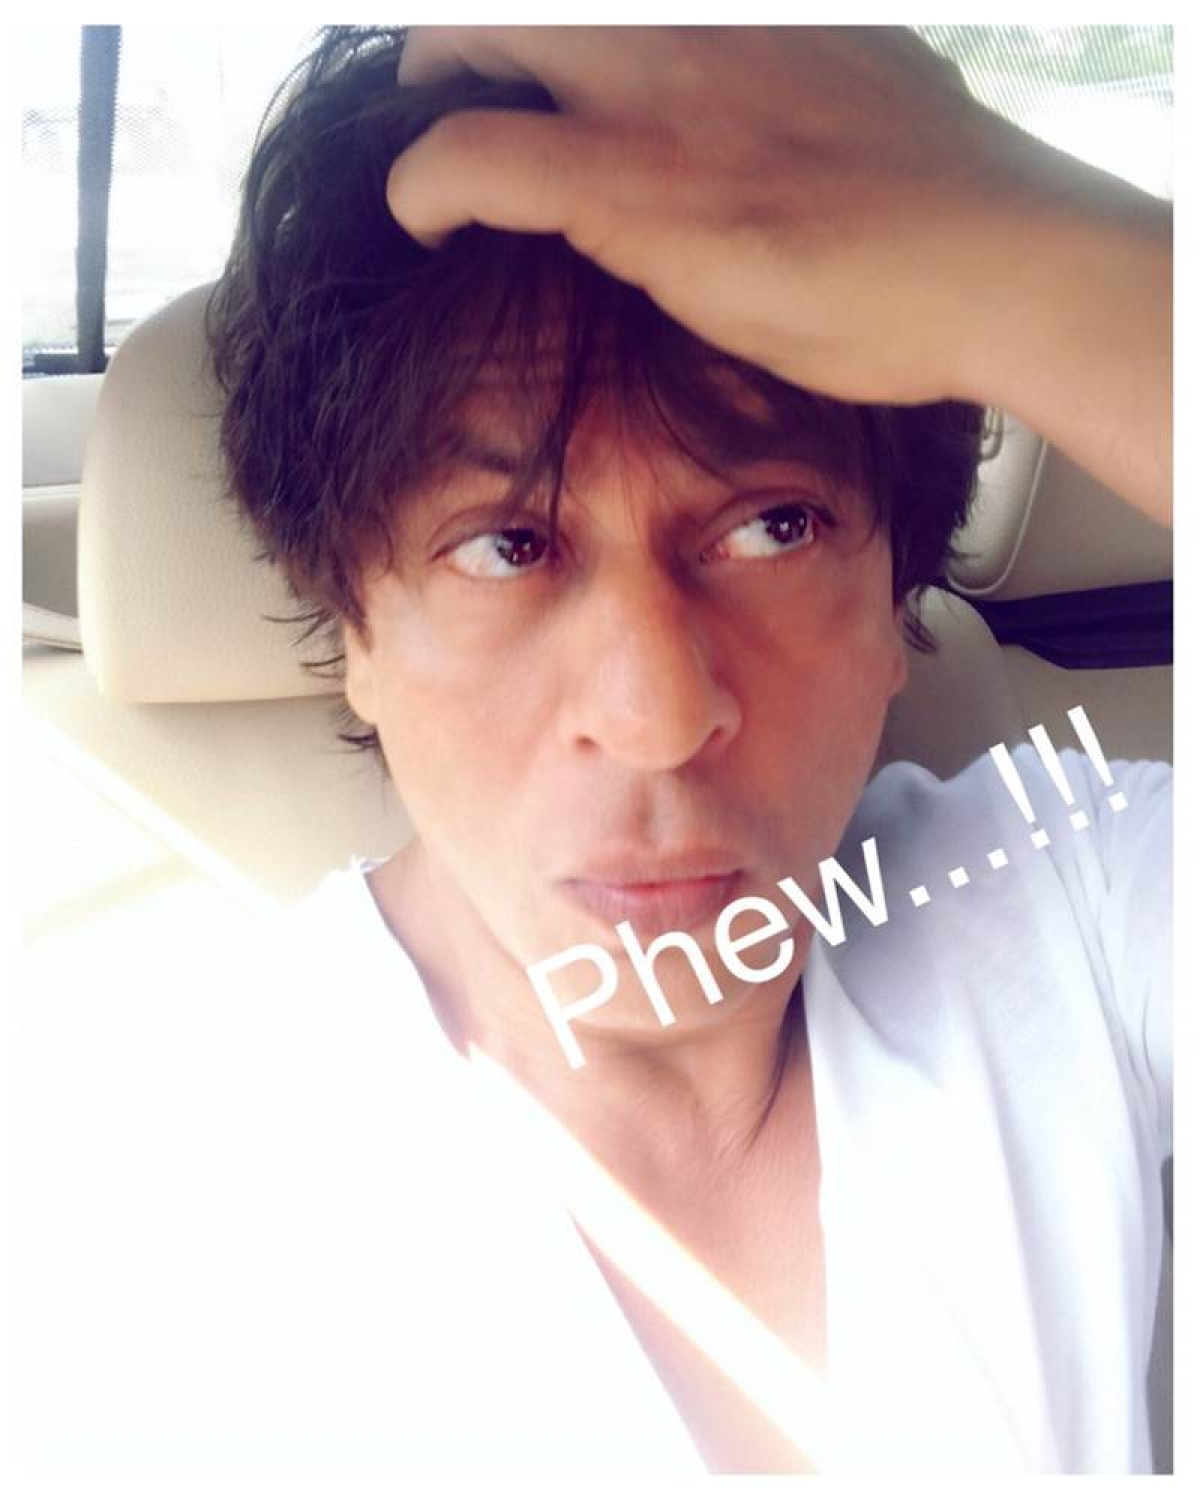 SRK addresses death hoax rumours as European news network says he died in air crash